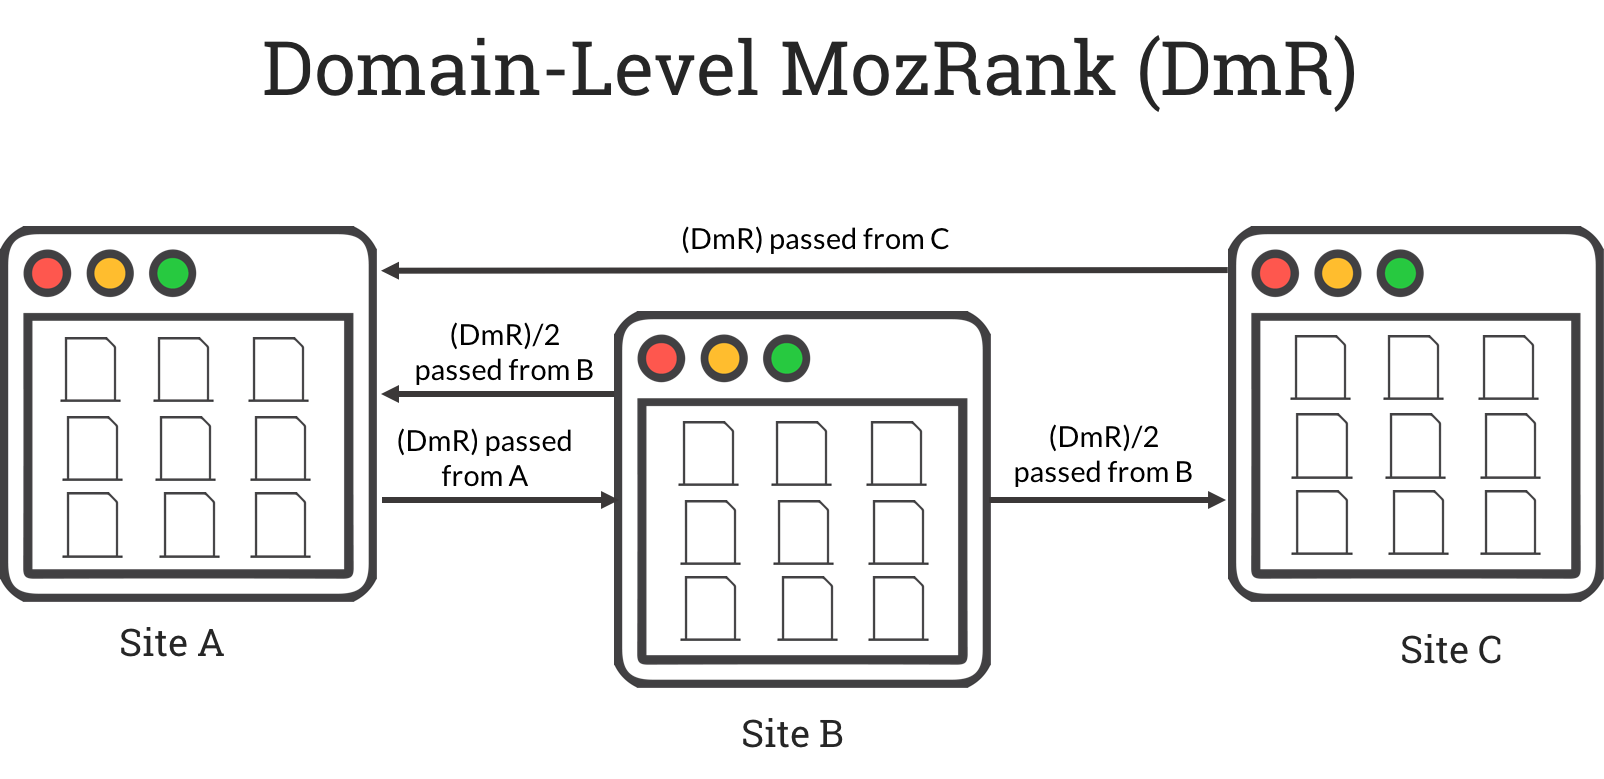 Domain-level MozRank